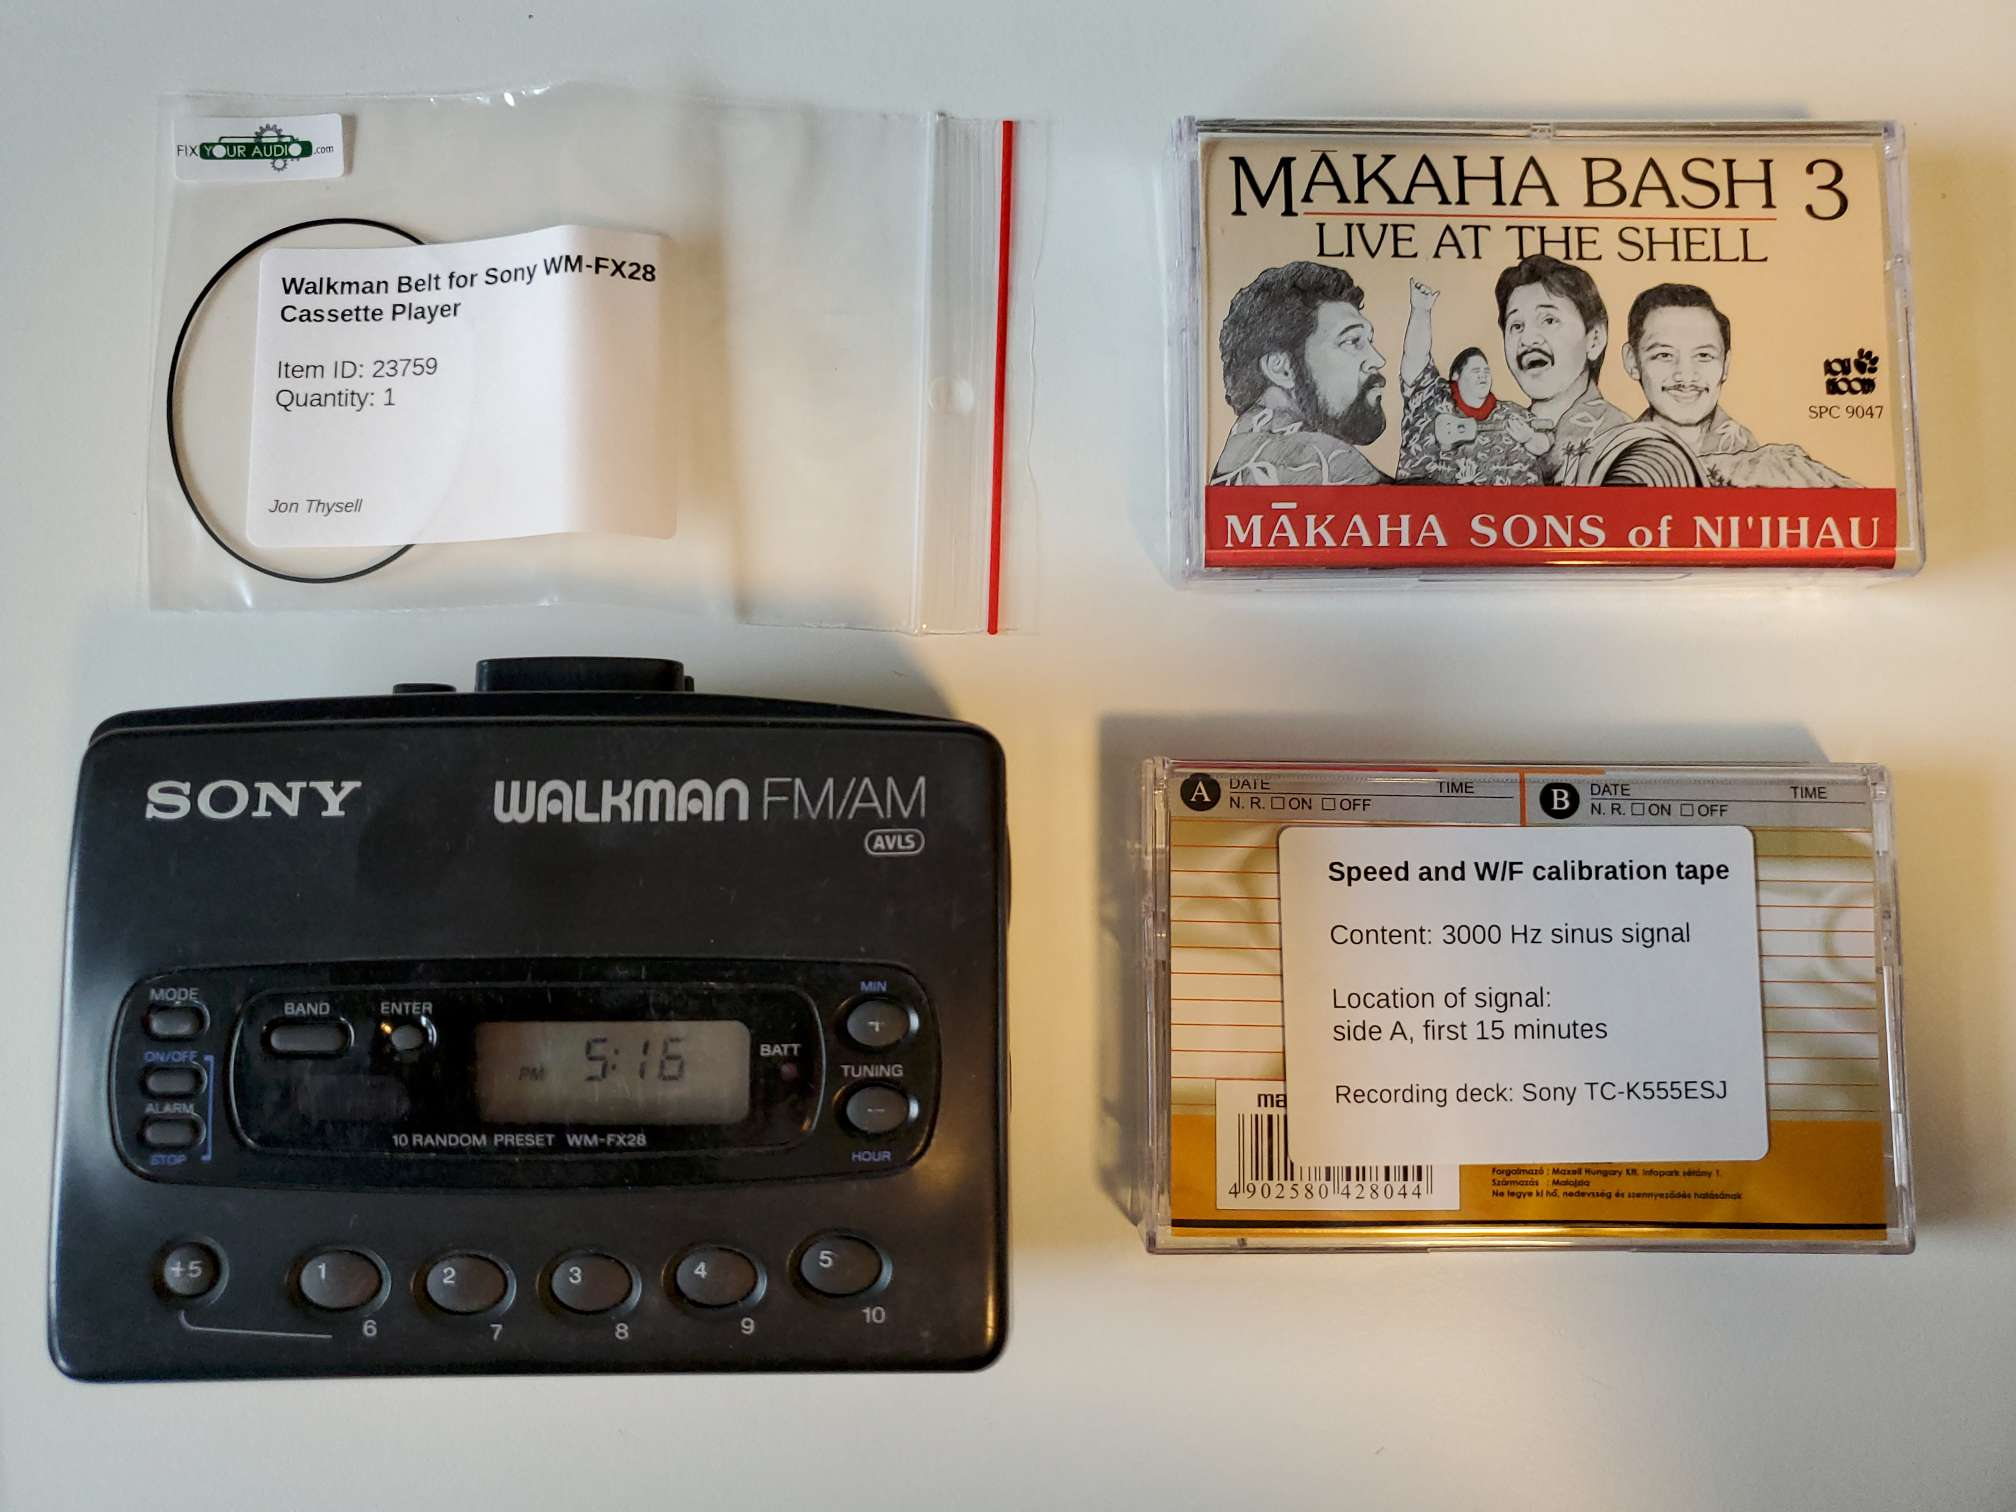 Sony Walkman WM-FX28 with Replacement Belt, Speed Calibration Tape, and Hawaiian Cassette